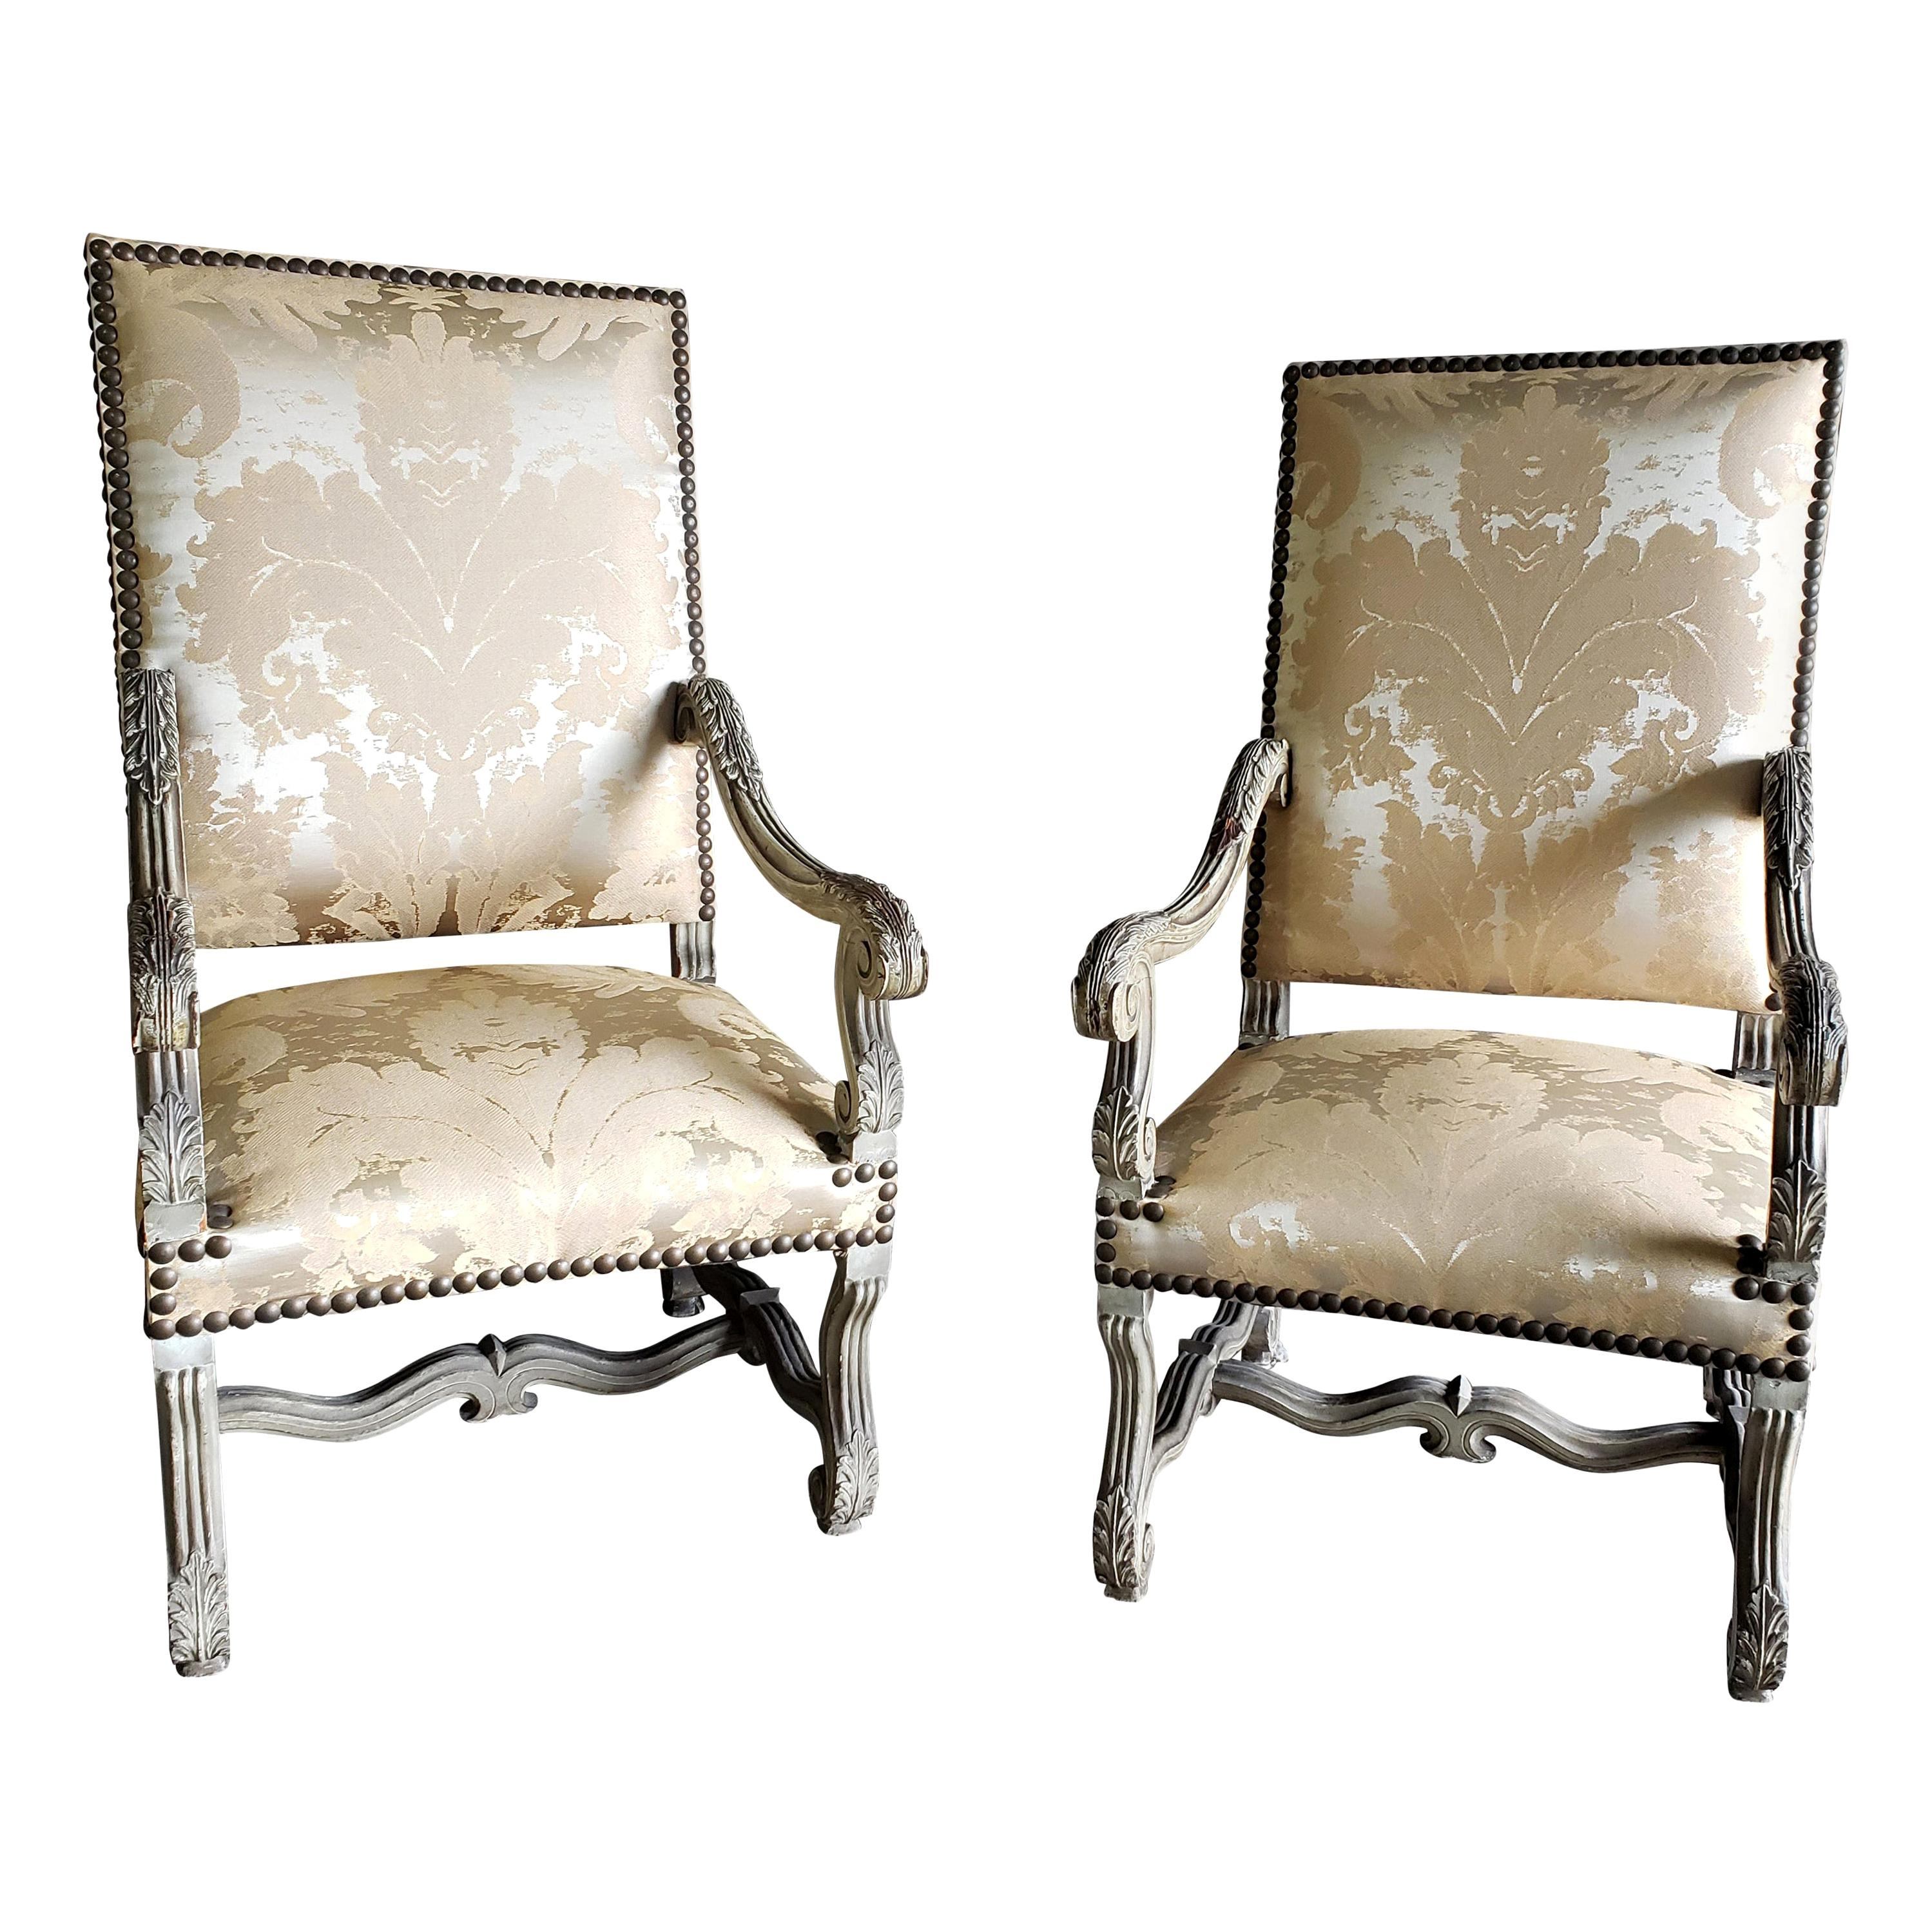 Pair of 19th Century French Louis XIV Armchairs or Fauteuils